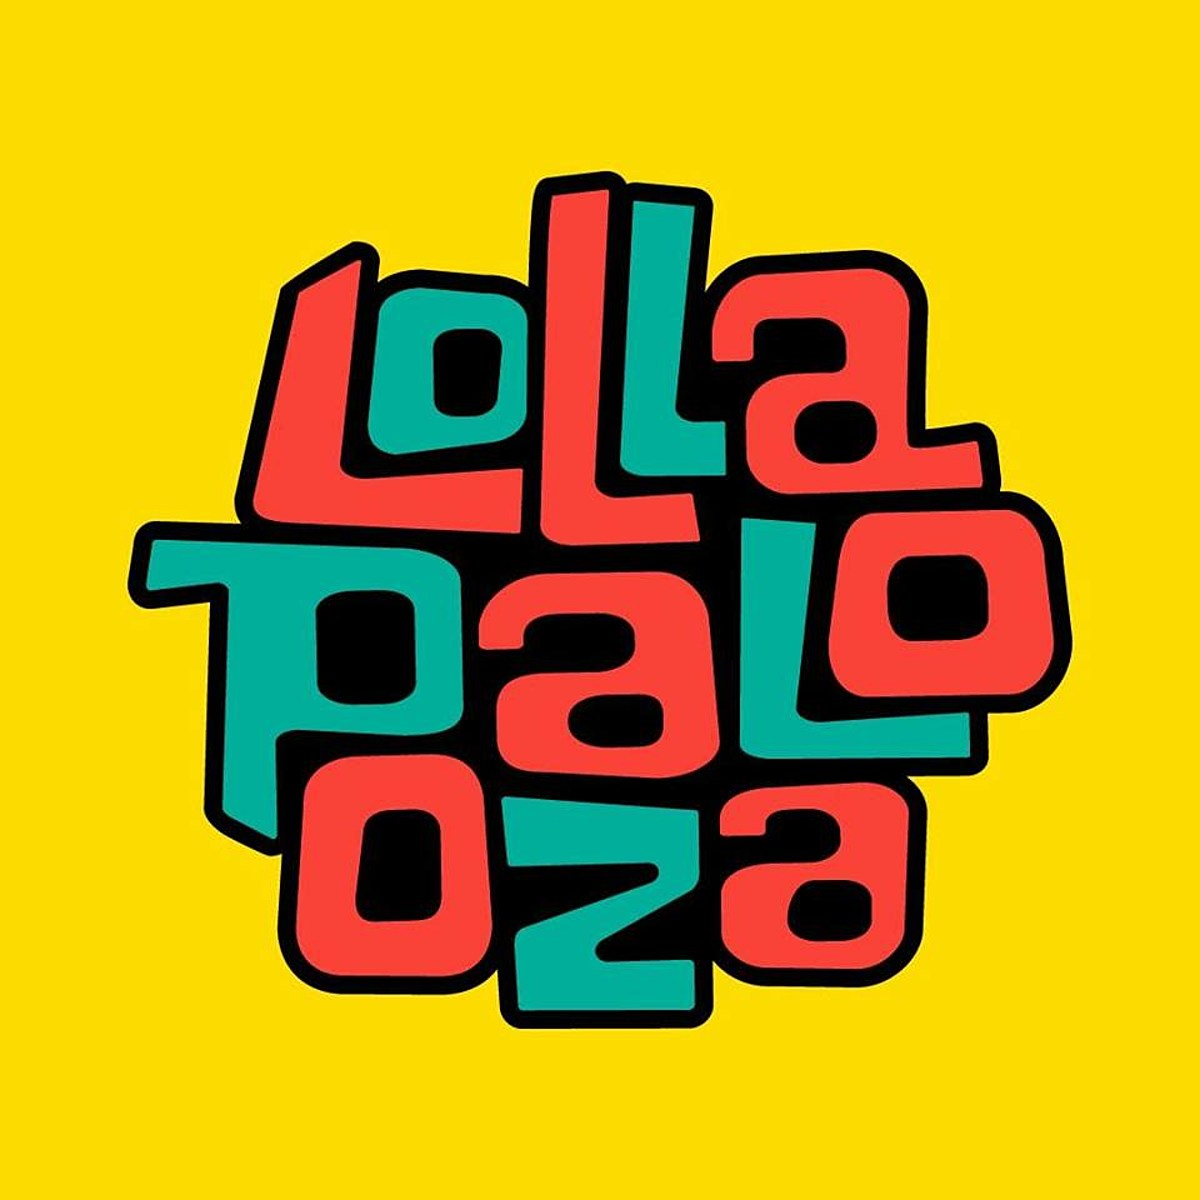 Lollapalooza South America 2020 lineups (Guns N' Roses, Strokes, Lana Del Rey, Travis Scott, more)